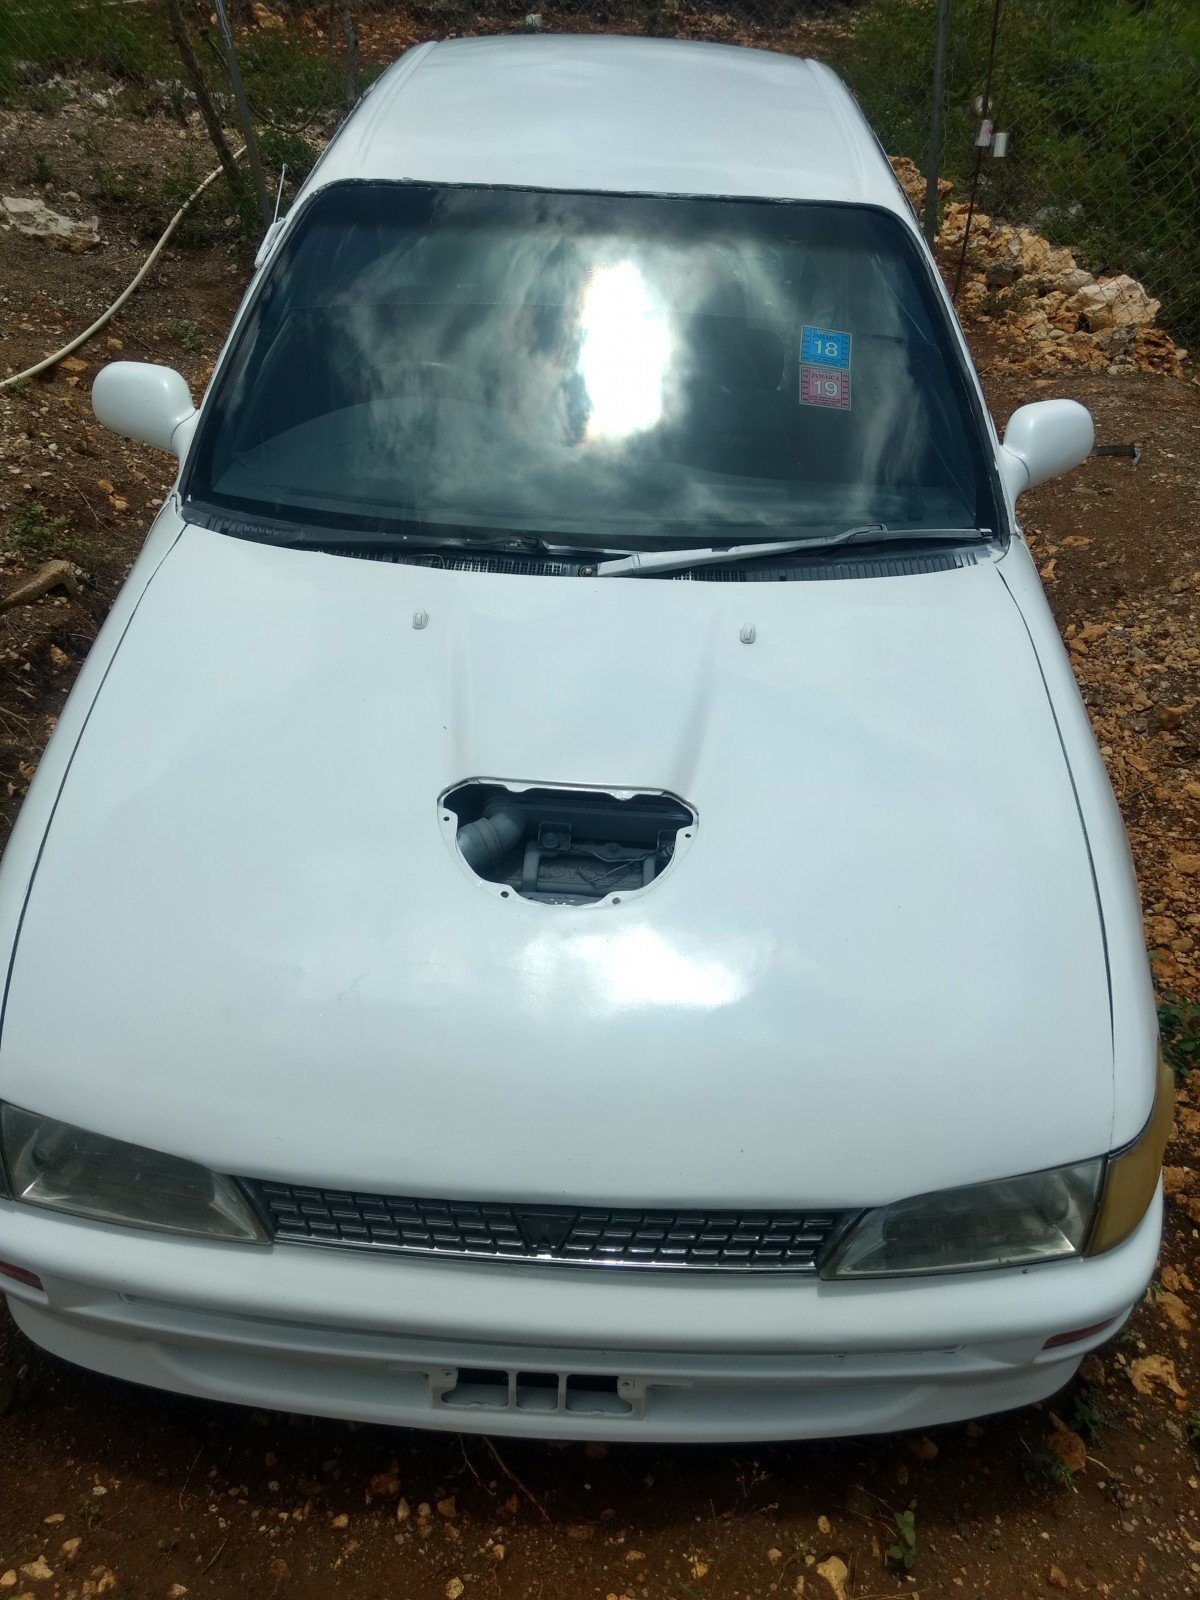 Toyota Corolla Police Shape Turbo Car For Sale In Spanish